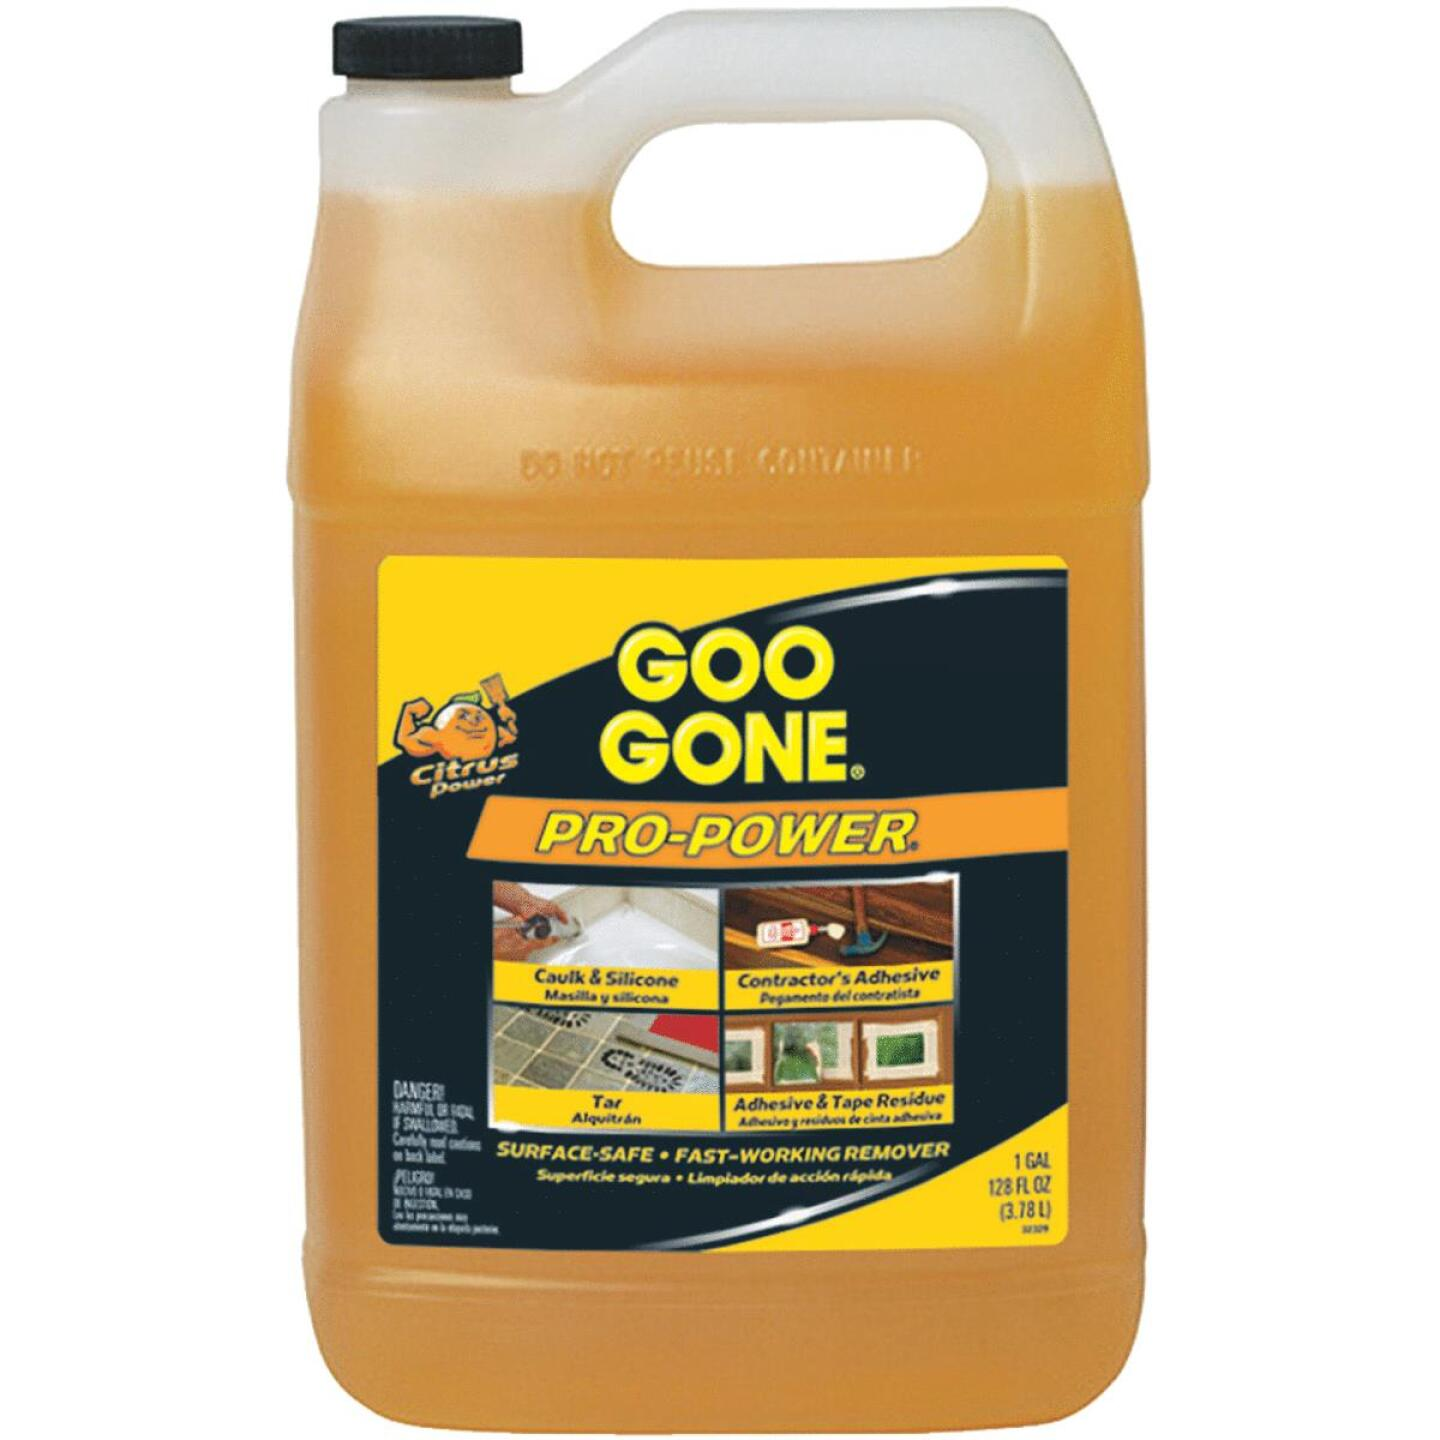 Goo Gone 1 Gal. Pro-Power Adhesive Remover Image 132